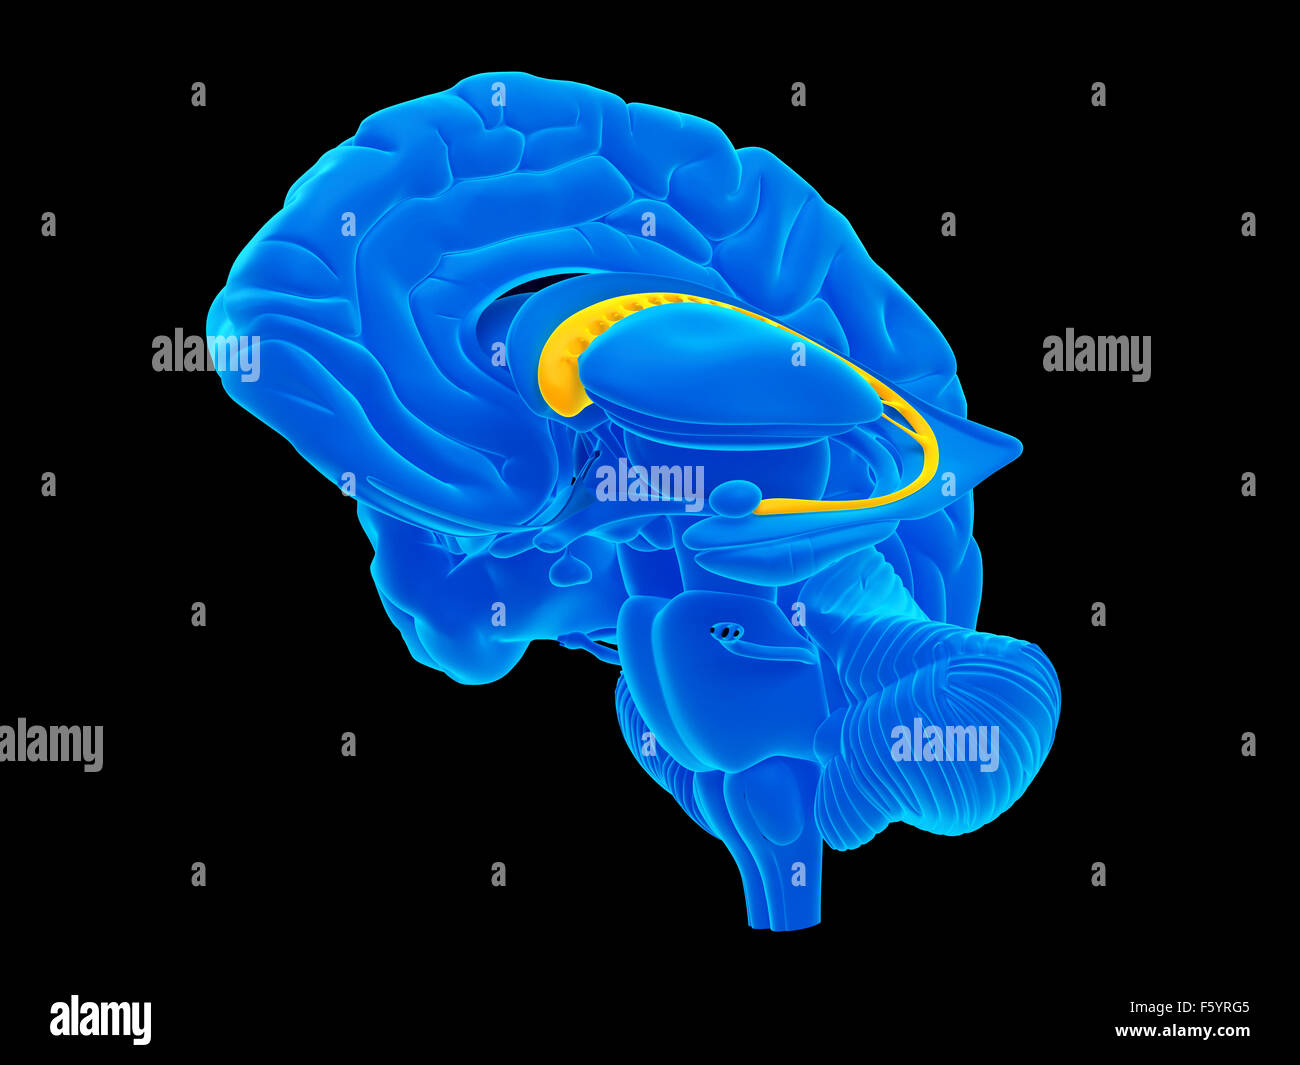 medically accurate illustration of the caudate nucleus - Stock Image